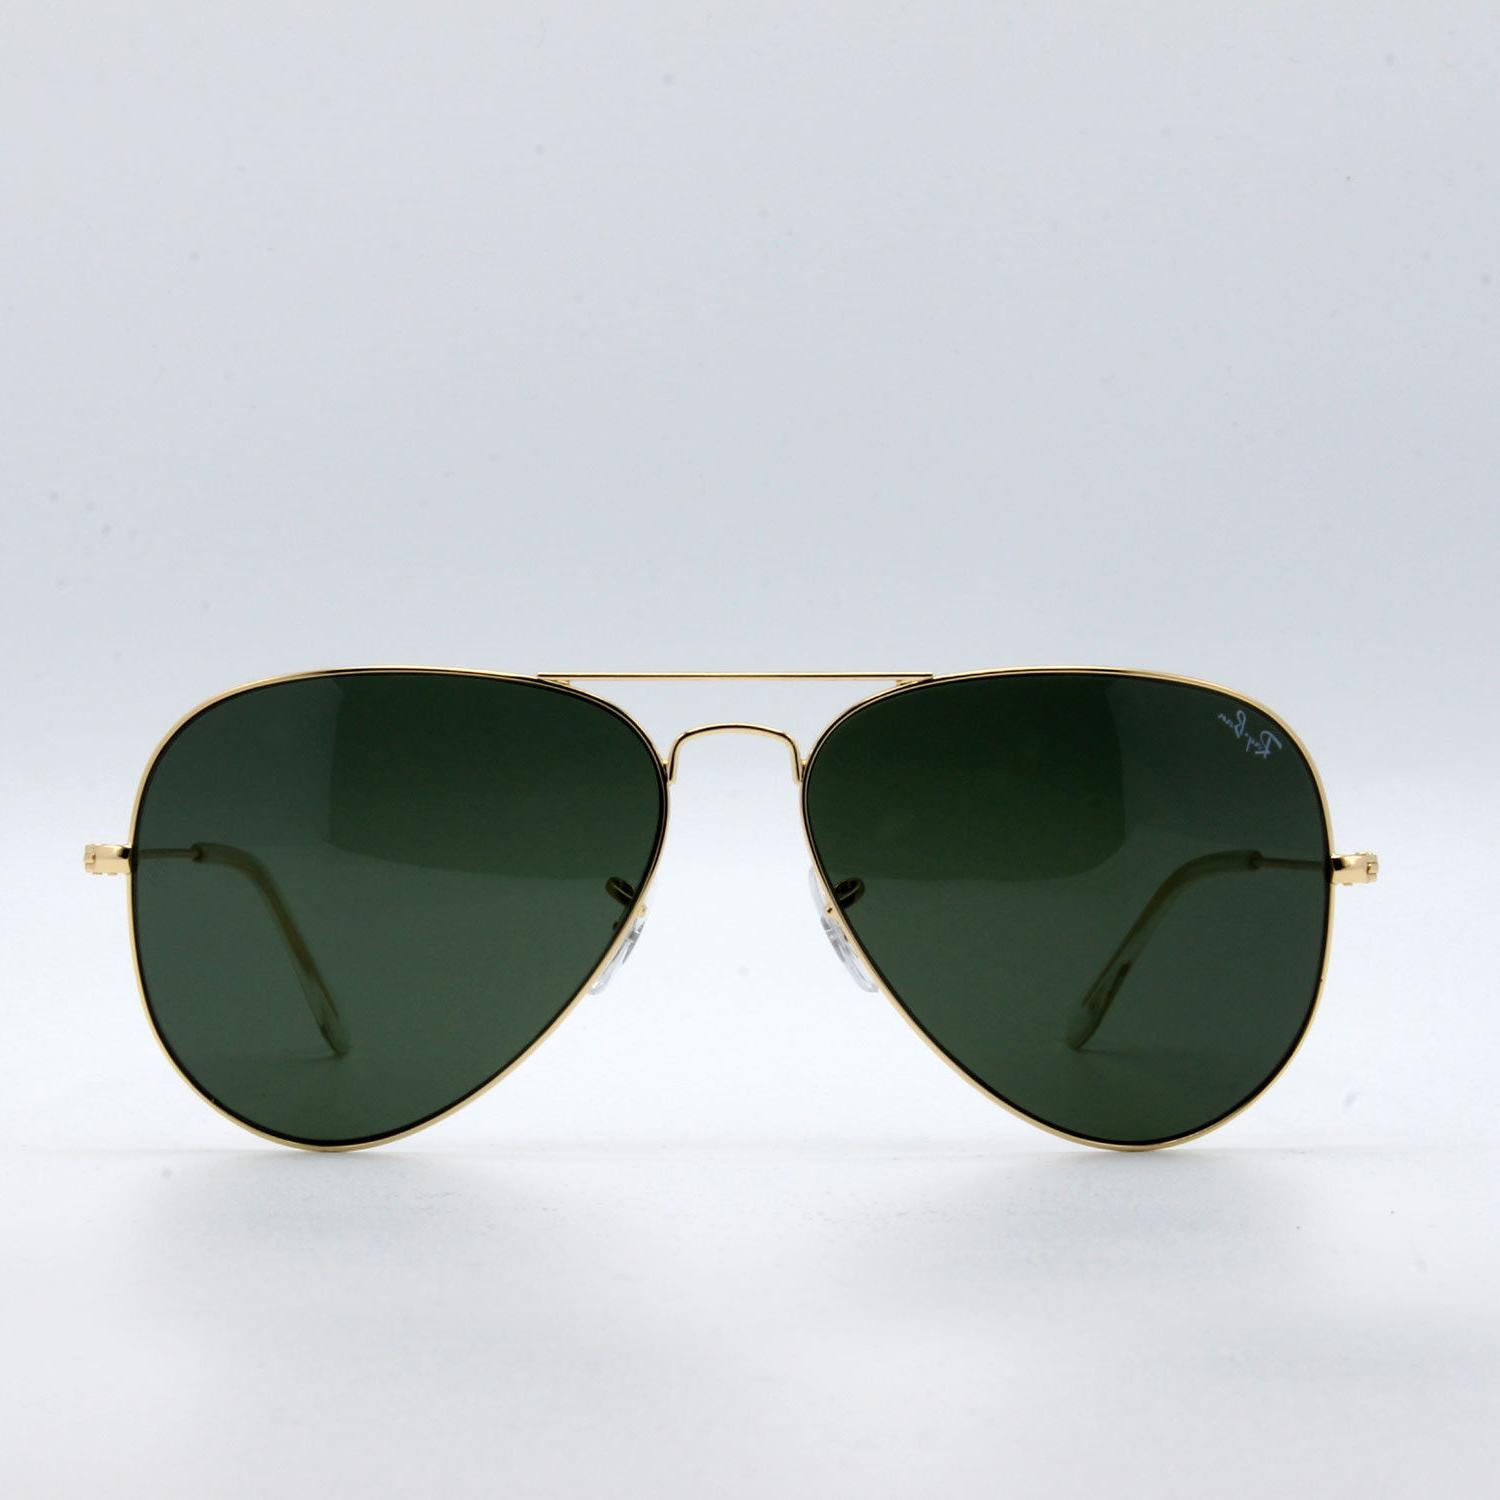 Ray-Ban new sunglasses for men, green LARGE